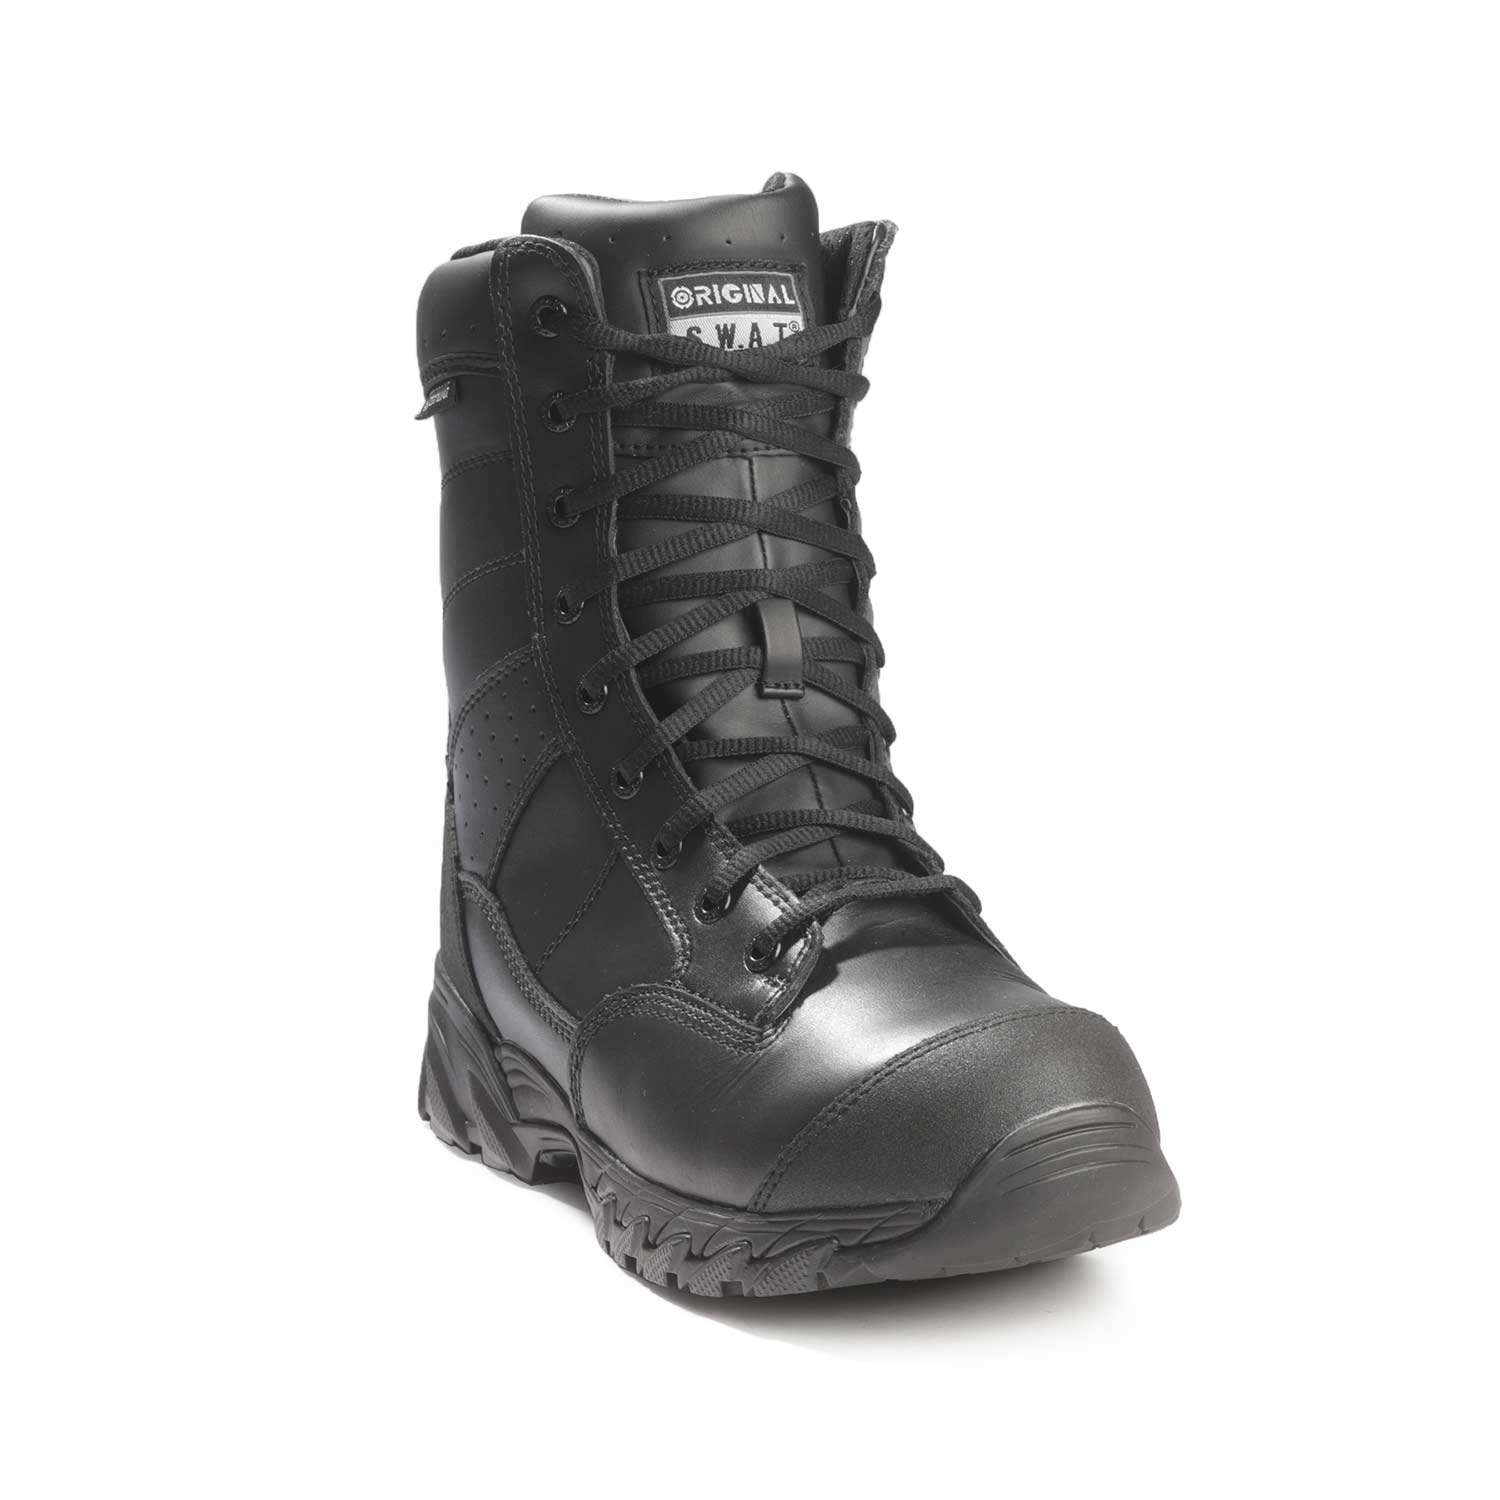 "Original S.W.A.T. 9"" Chase Tactical WP Boot"